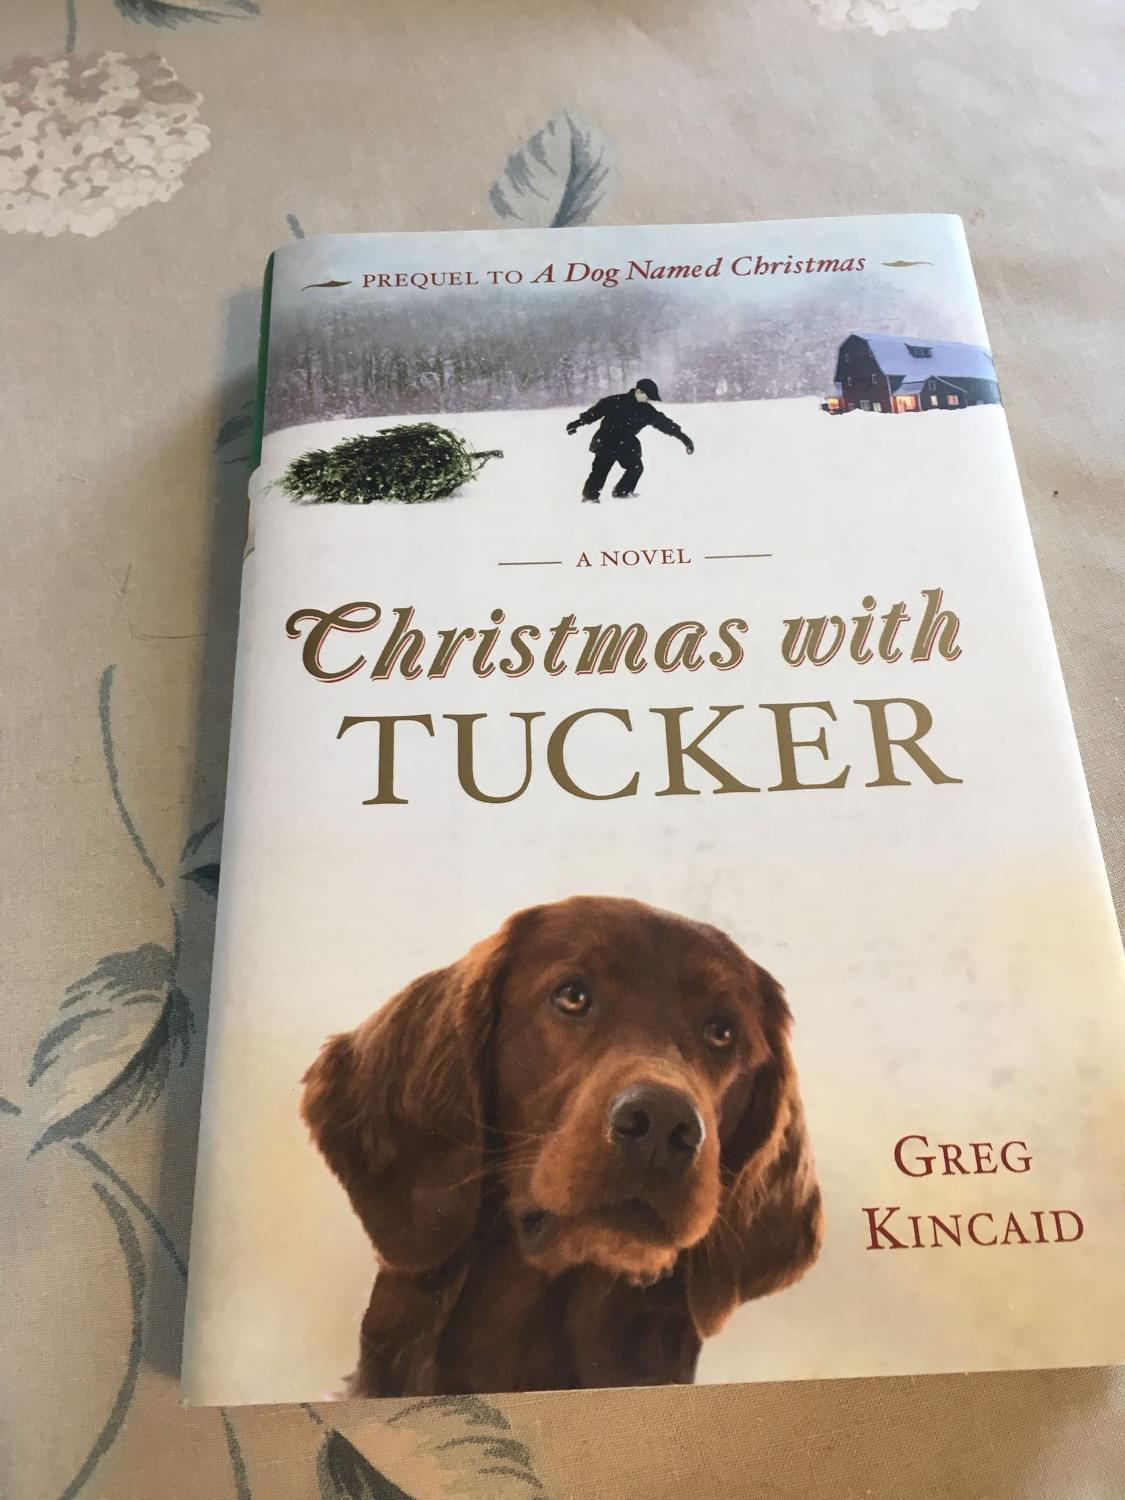 Christmas With Tucker.Christmas With Tucker A Dog Named Christmas By Greg Kincaid Smoke Free Home Price For Both